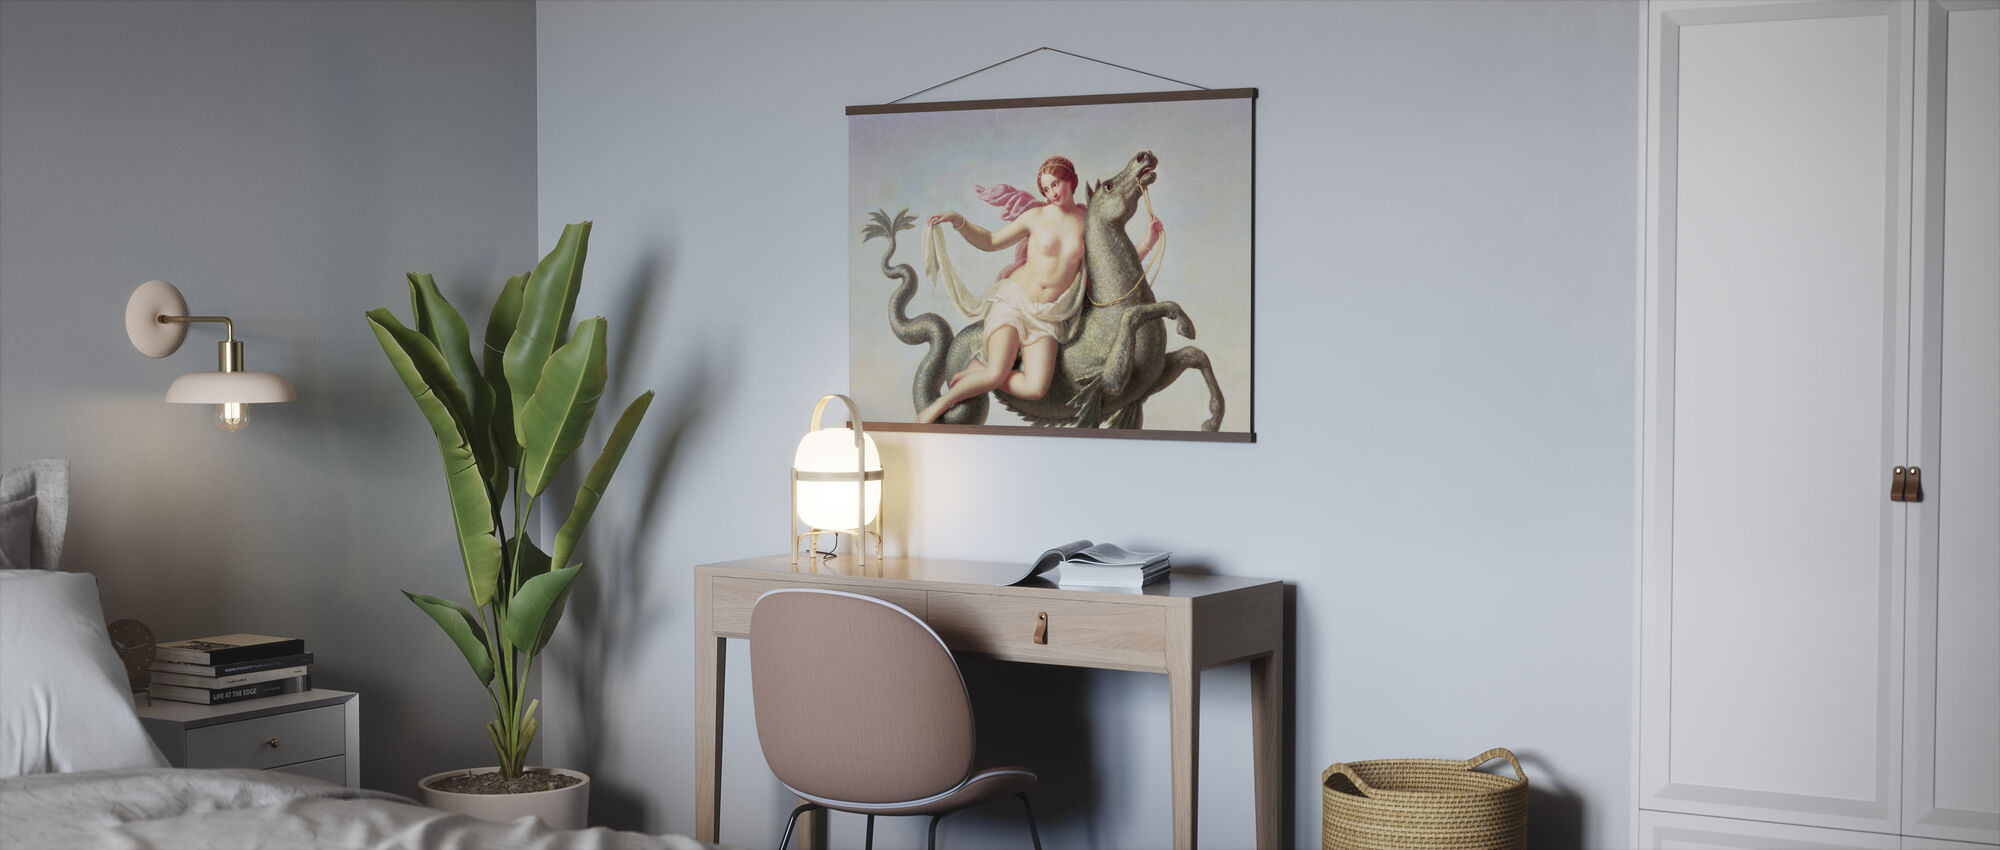 Escape of Galatea - Michelangelo Maestri - Poster - Office